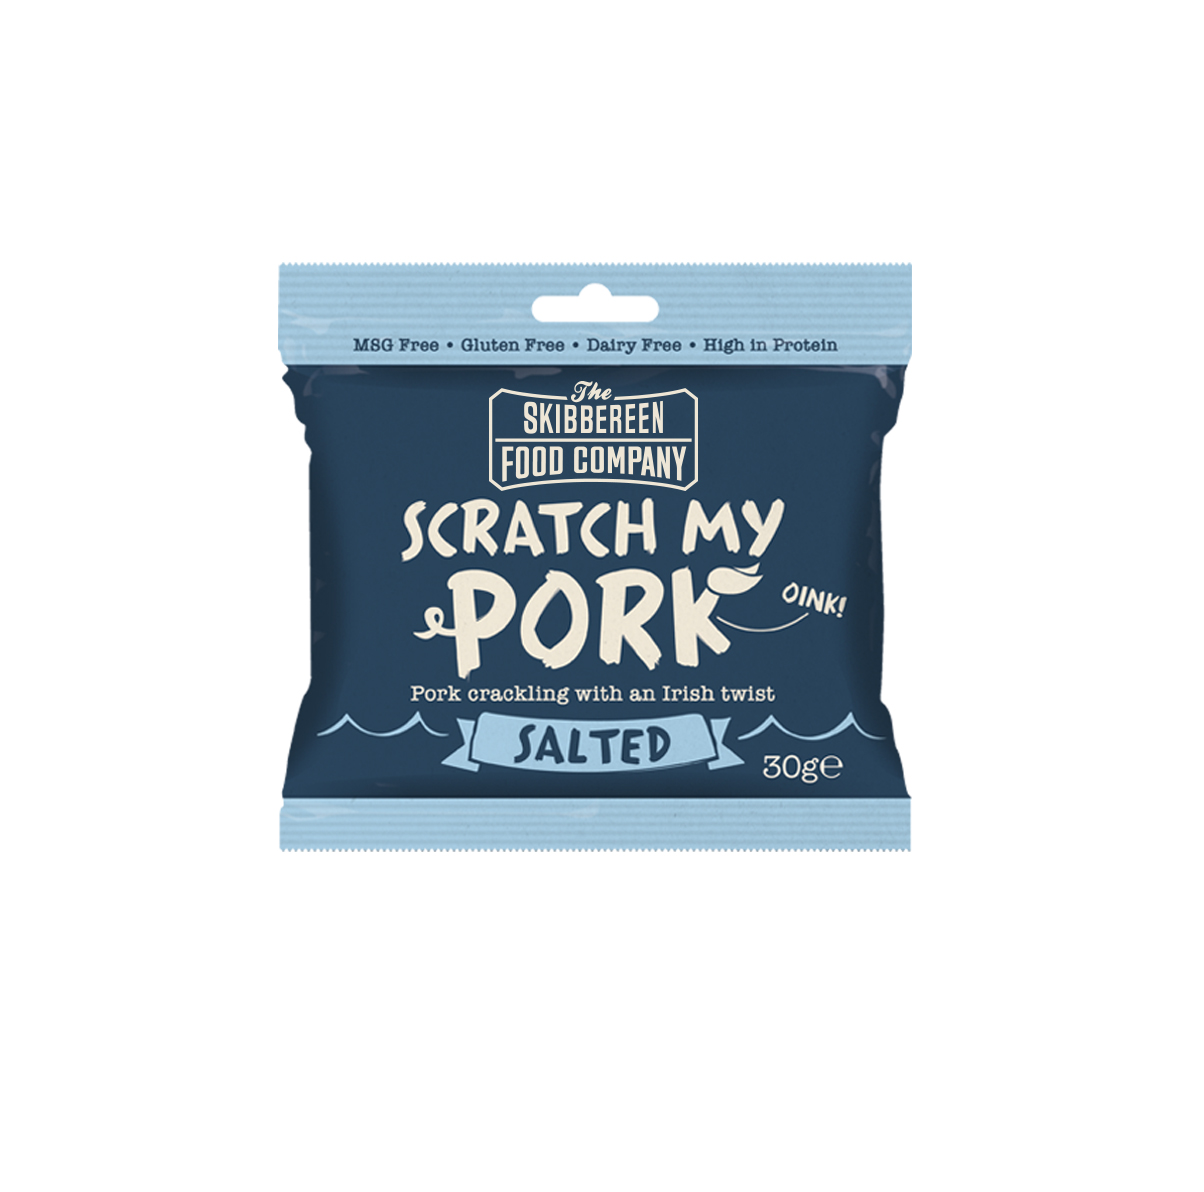 Salted Scratch My Pork pork crackling flavour